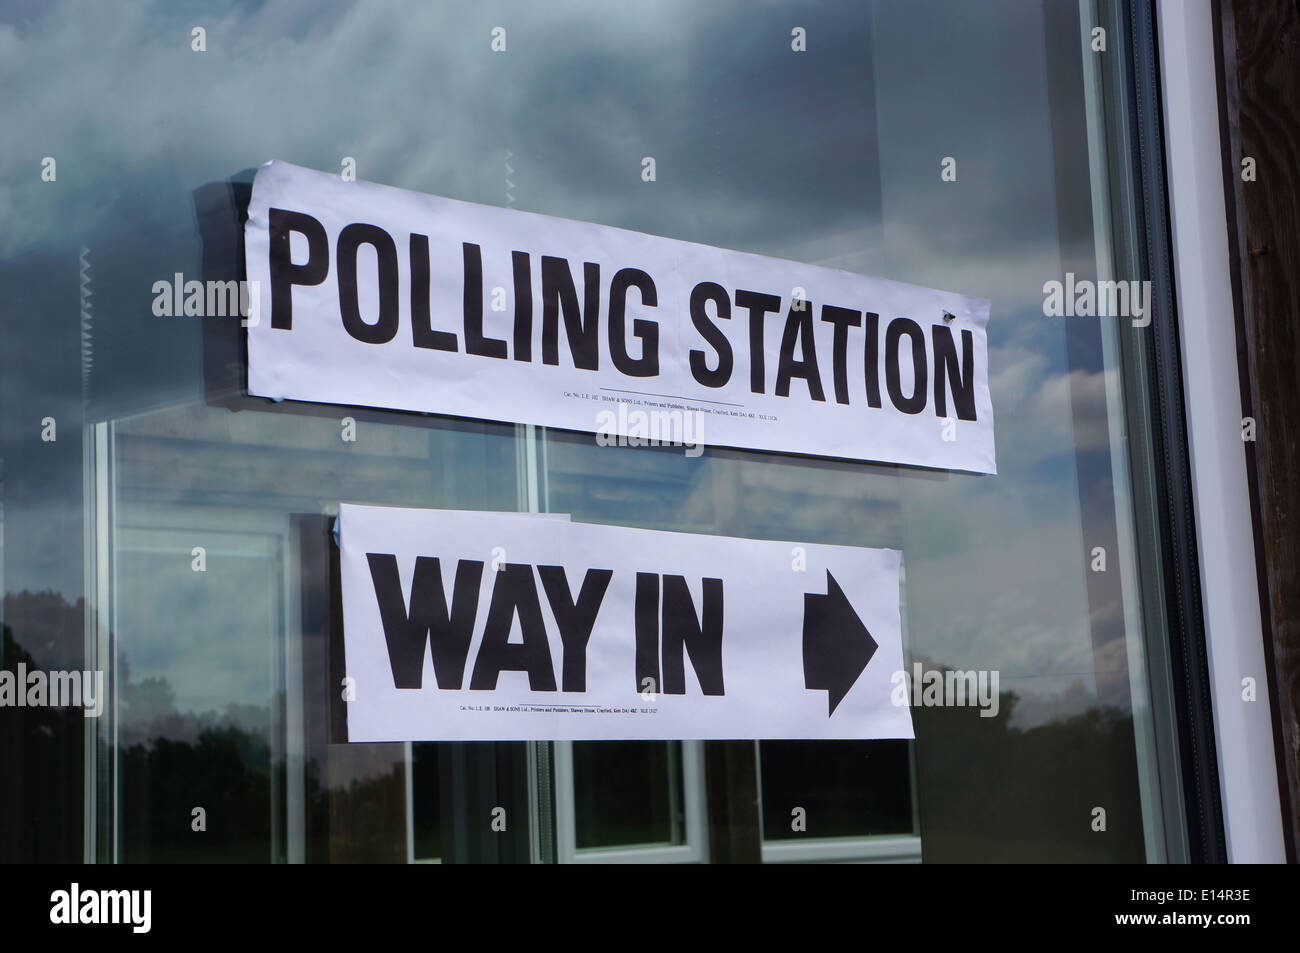 UK polling station during local elections - Stock Image